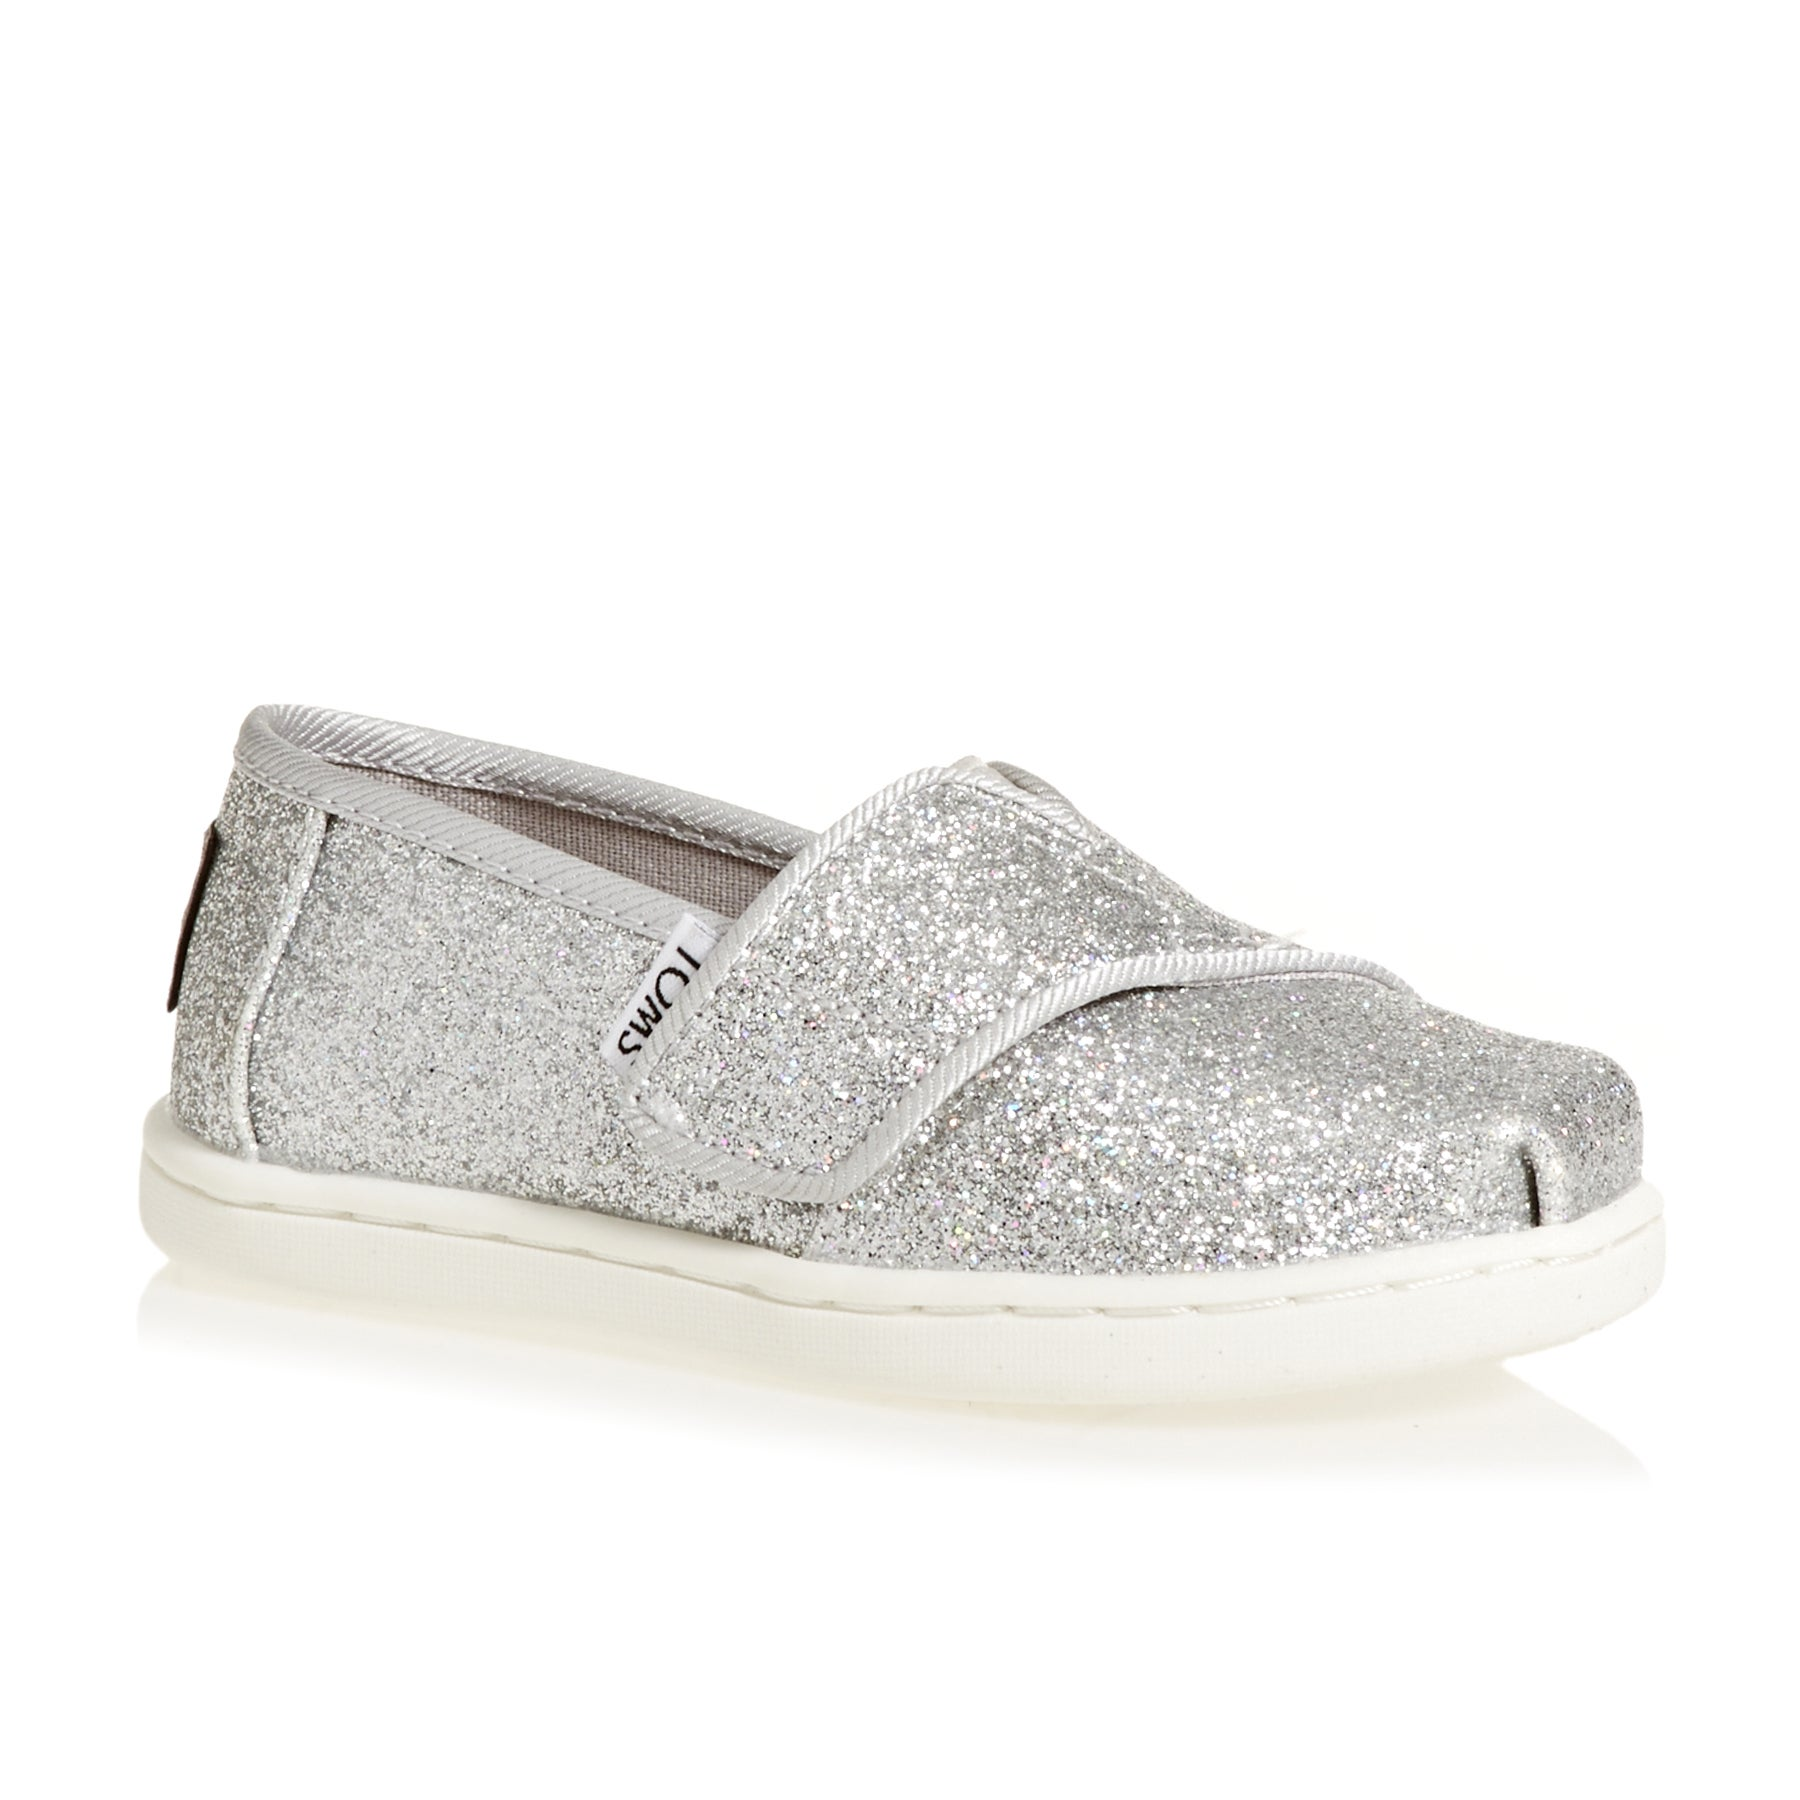 Toms Glimmer Mini Girls Slip On Shoes - Silver